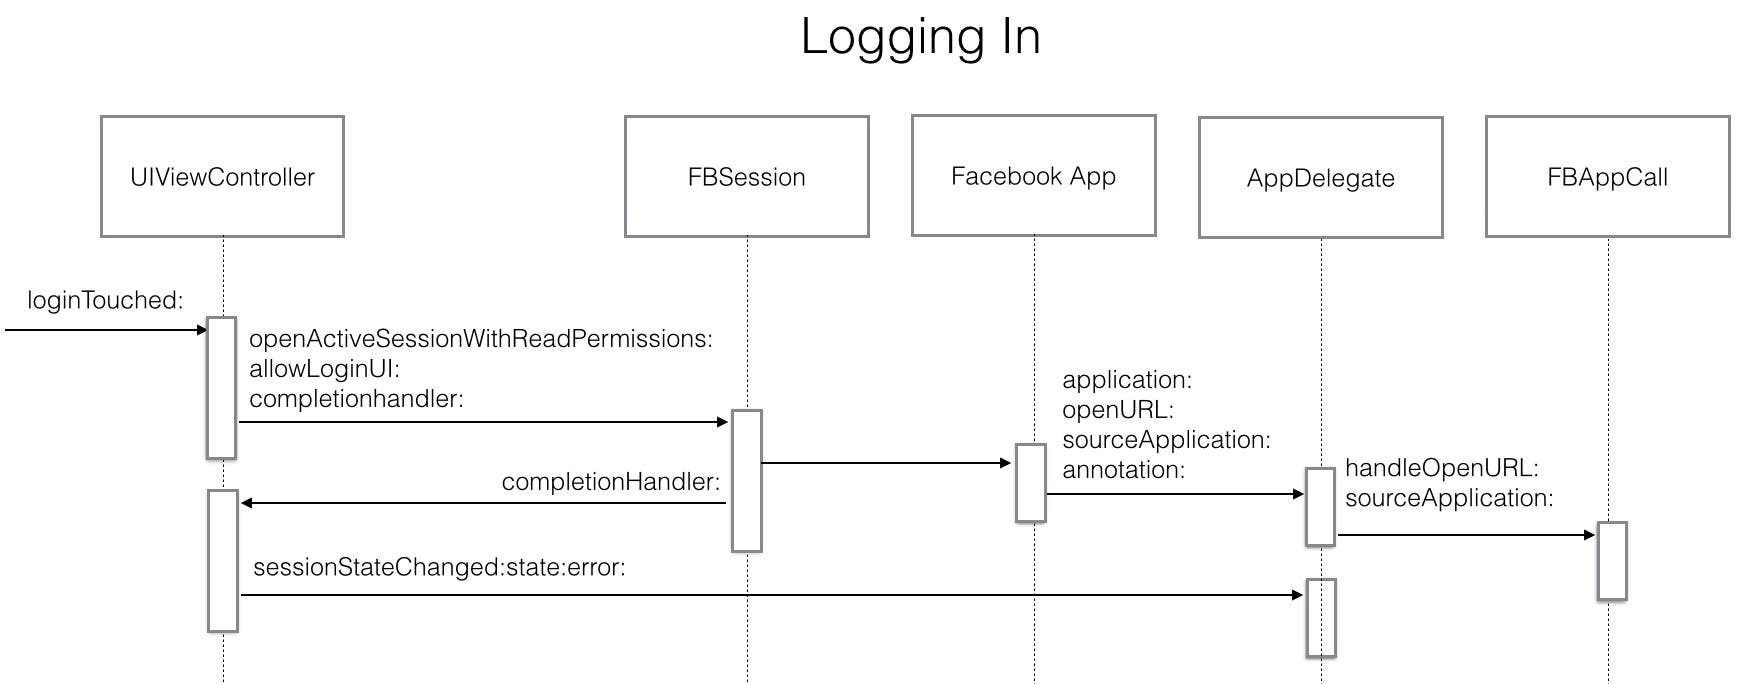 Unleash your inner app developer part 41 logging in with facebook logging in sequence diagram ccuart Choice Image